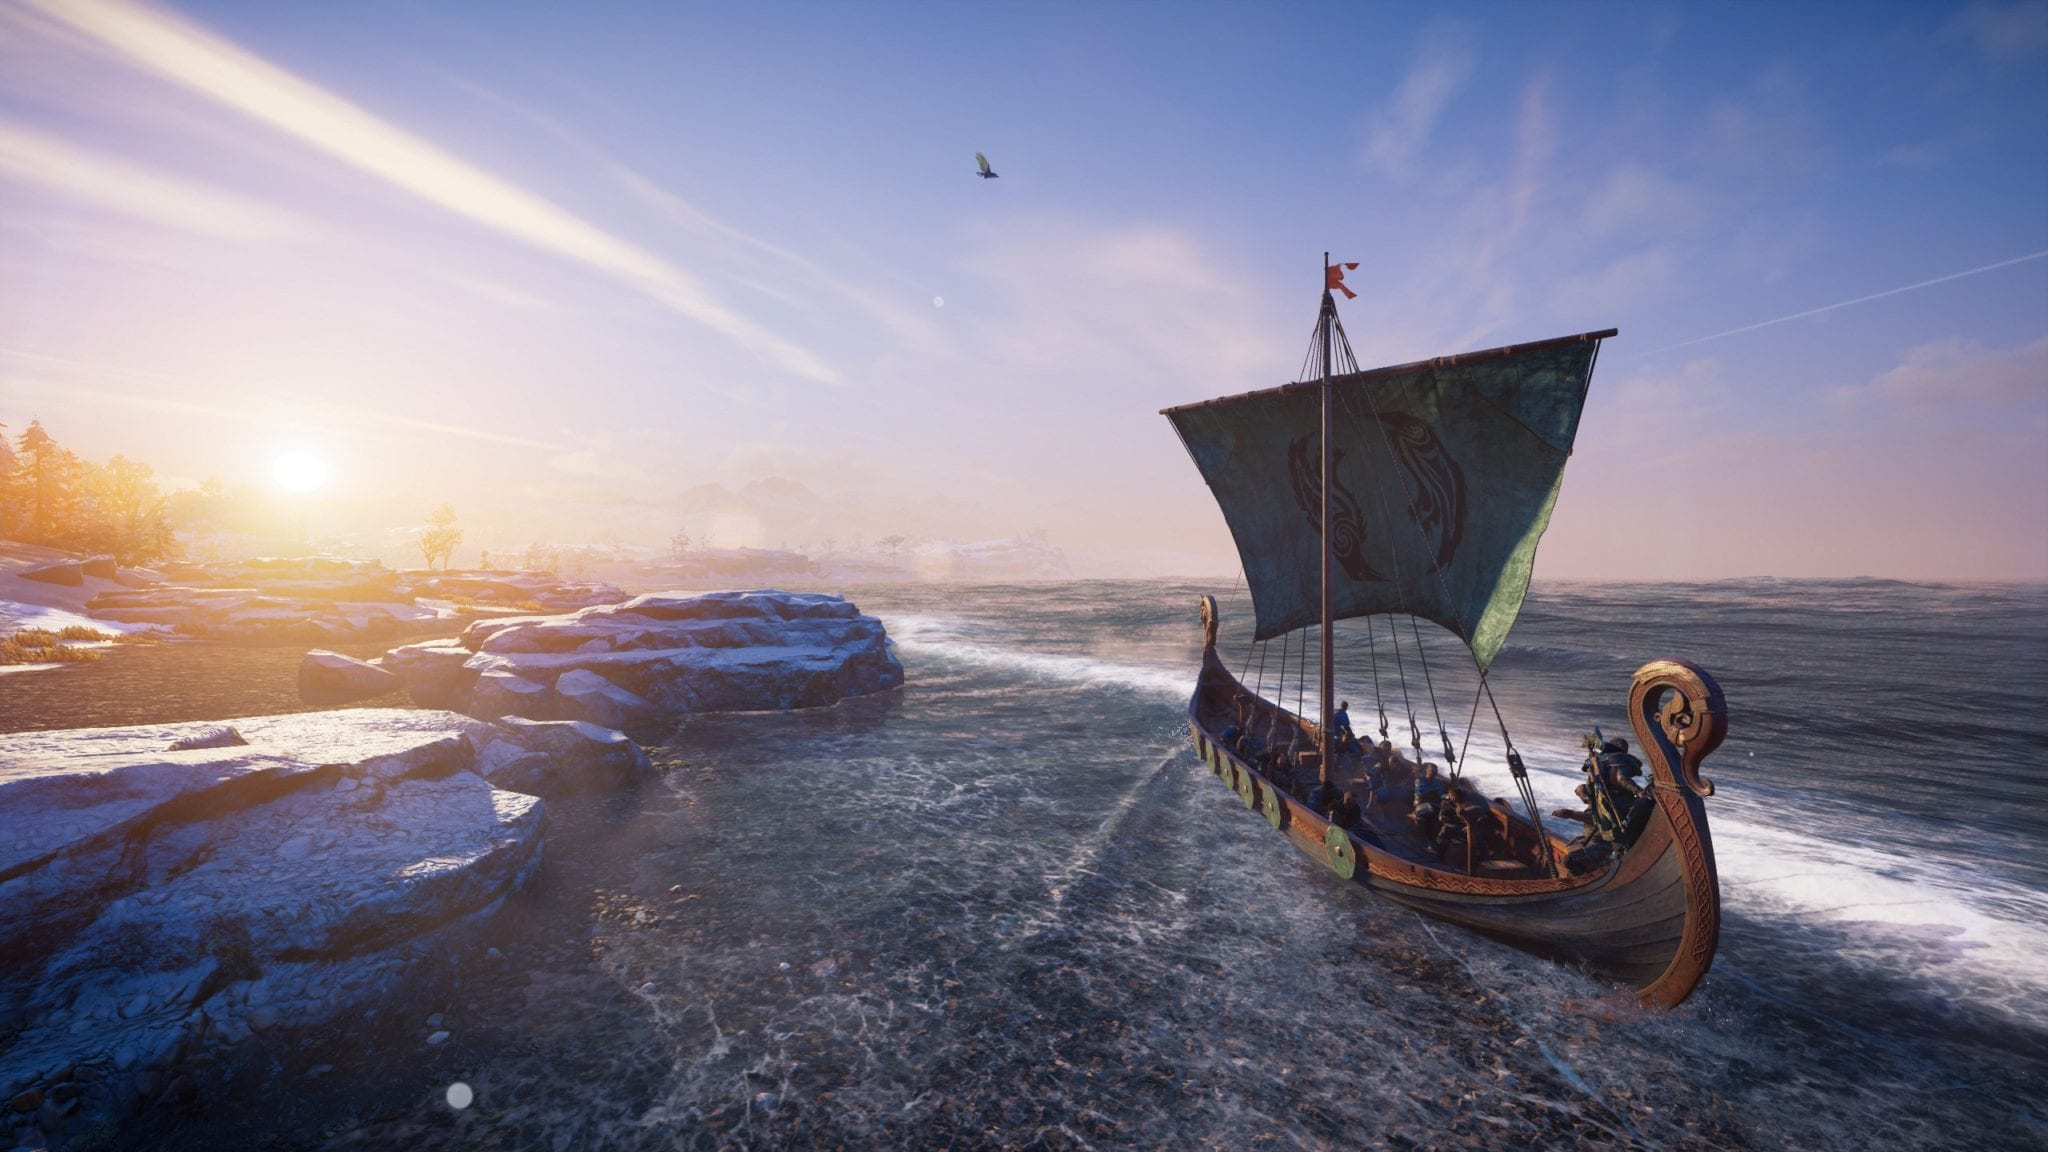 Longboat Exploration in Assassin's Creed Valhalla